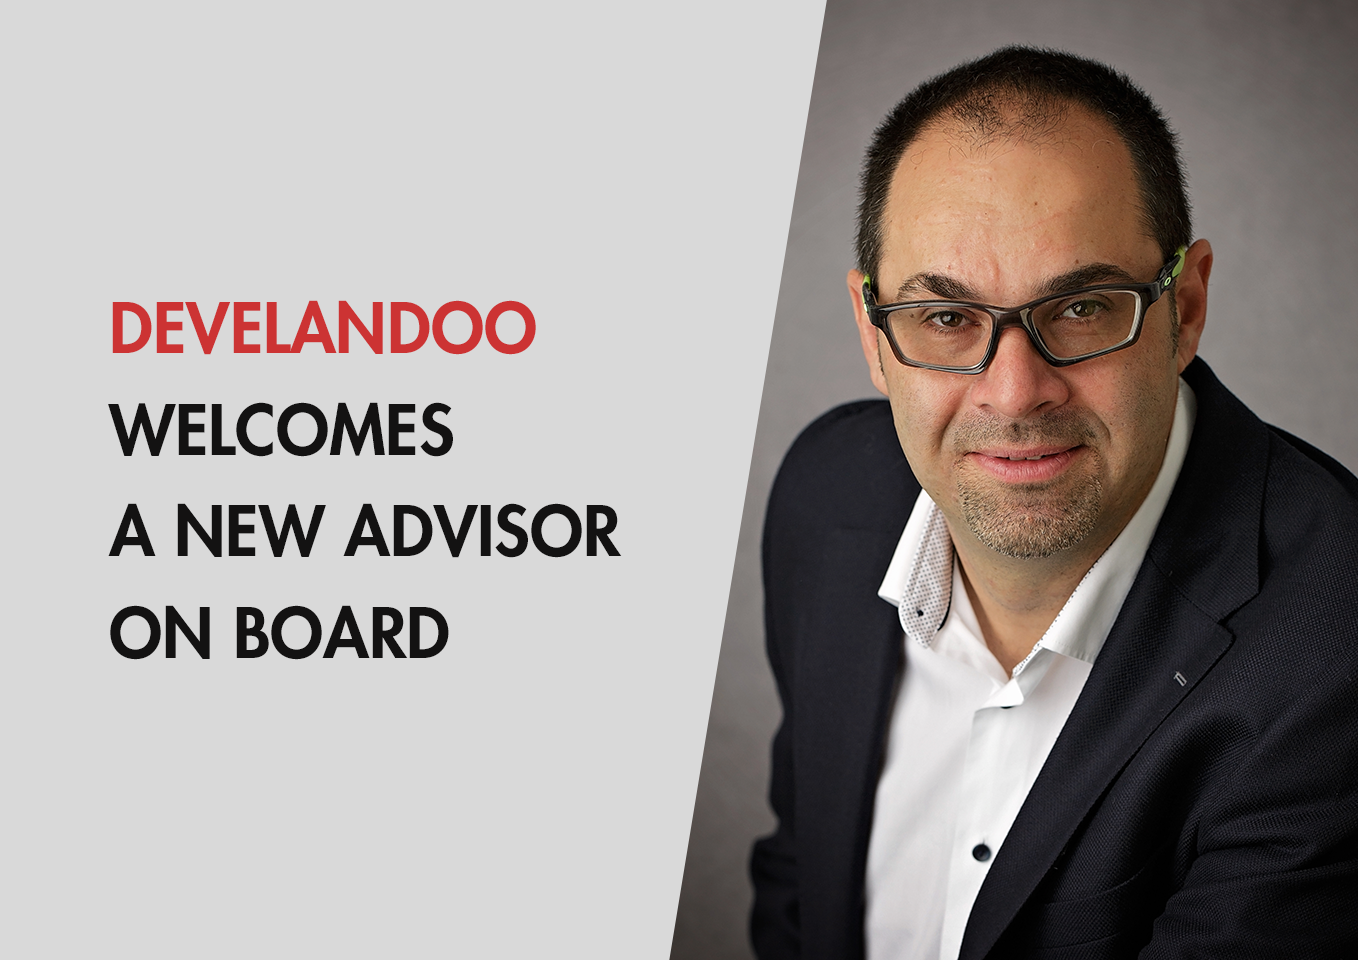 Develandoo Advisors' Team is Growing. We Have a New Professional on Board